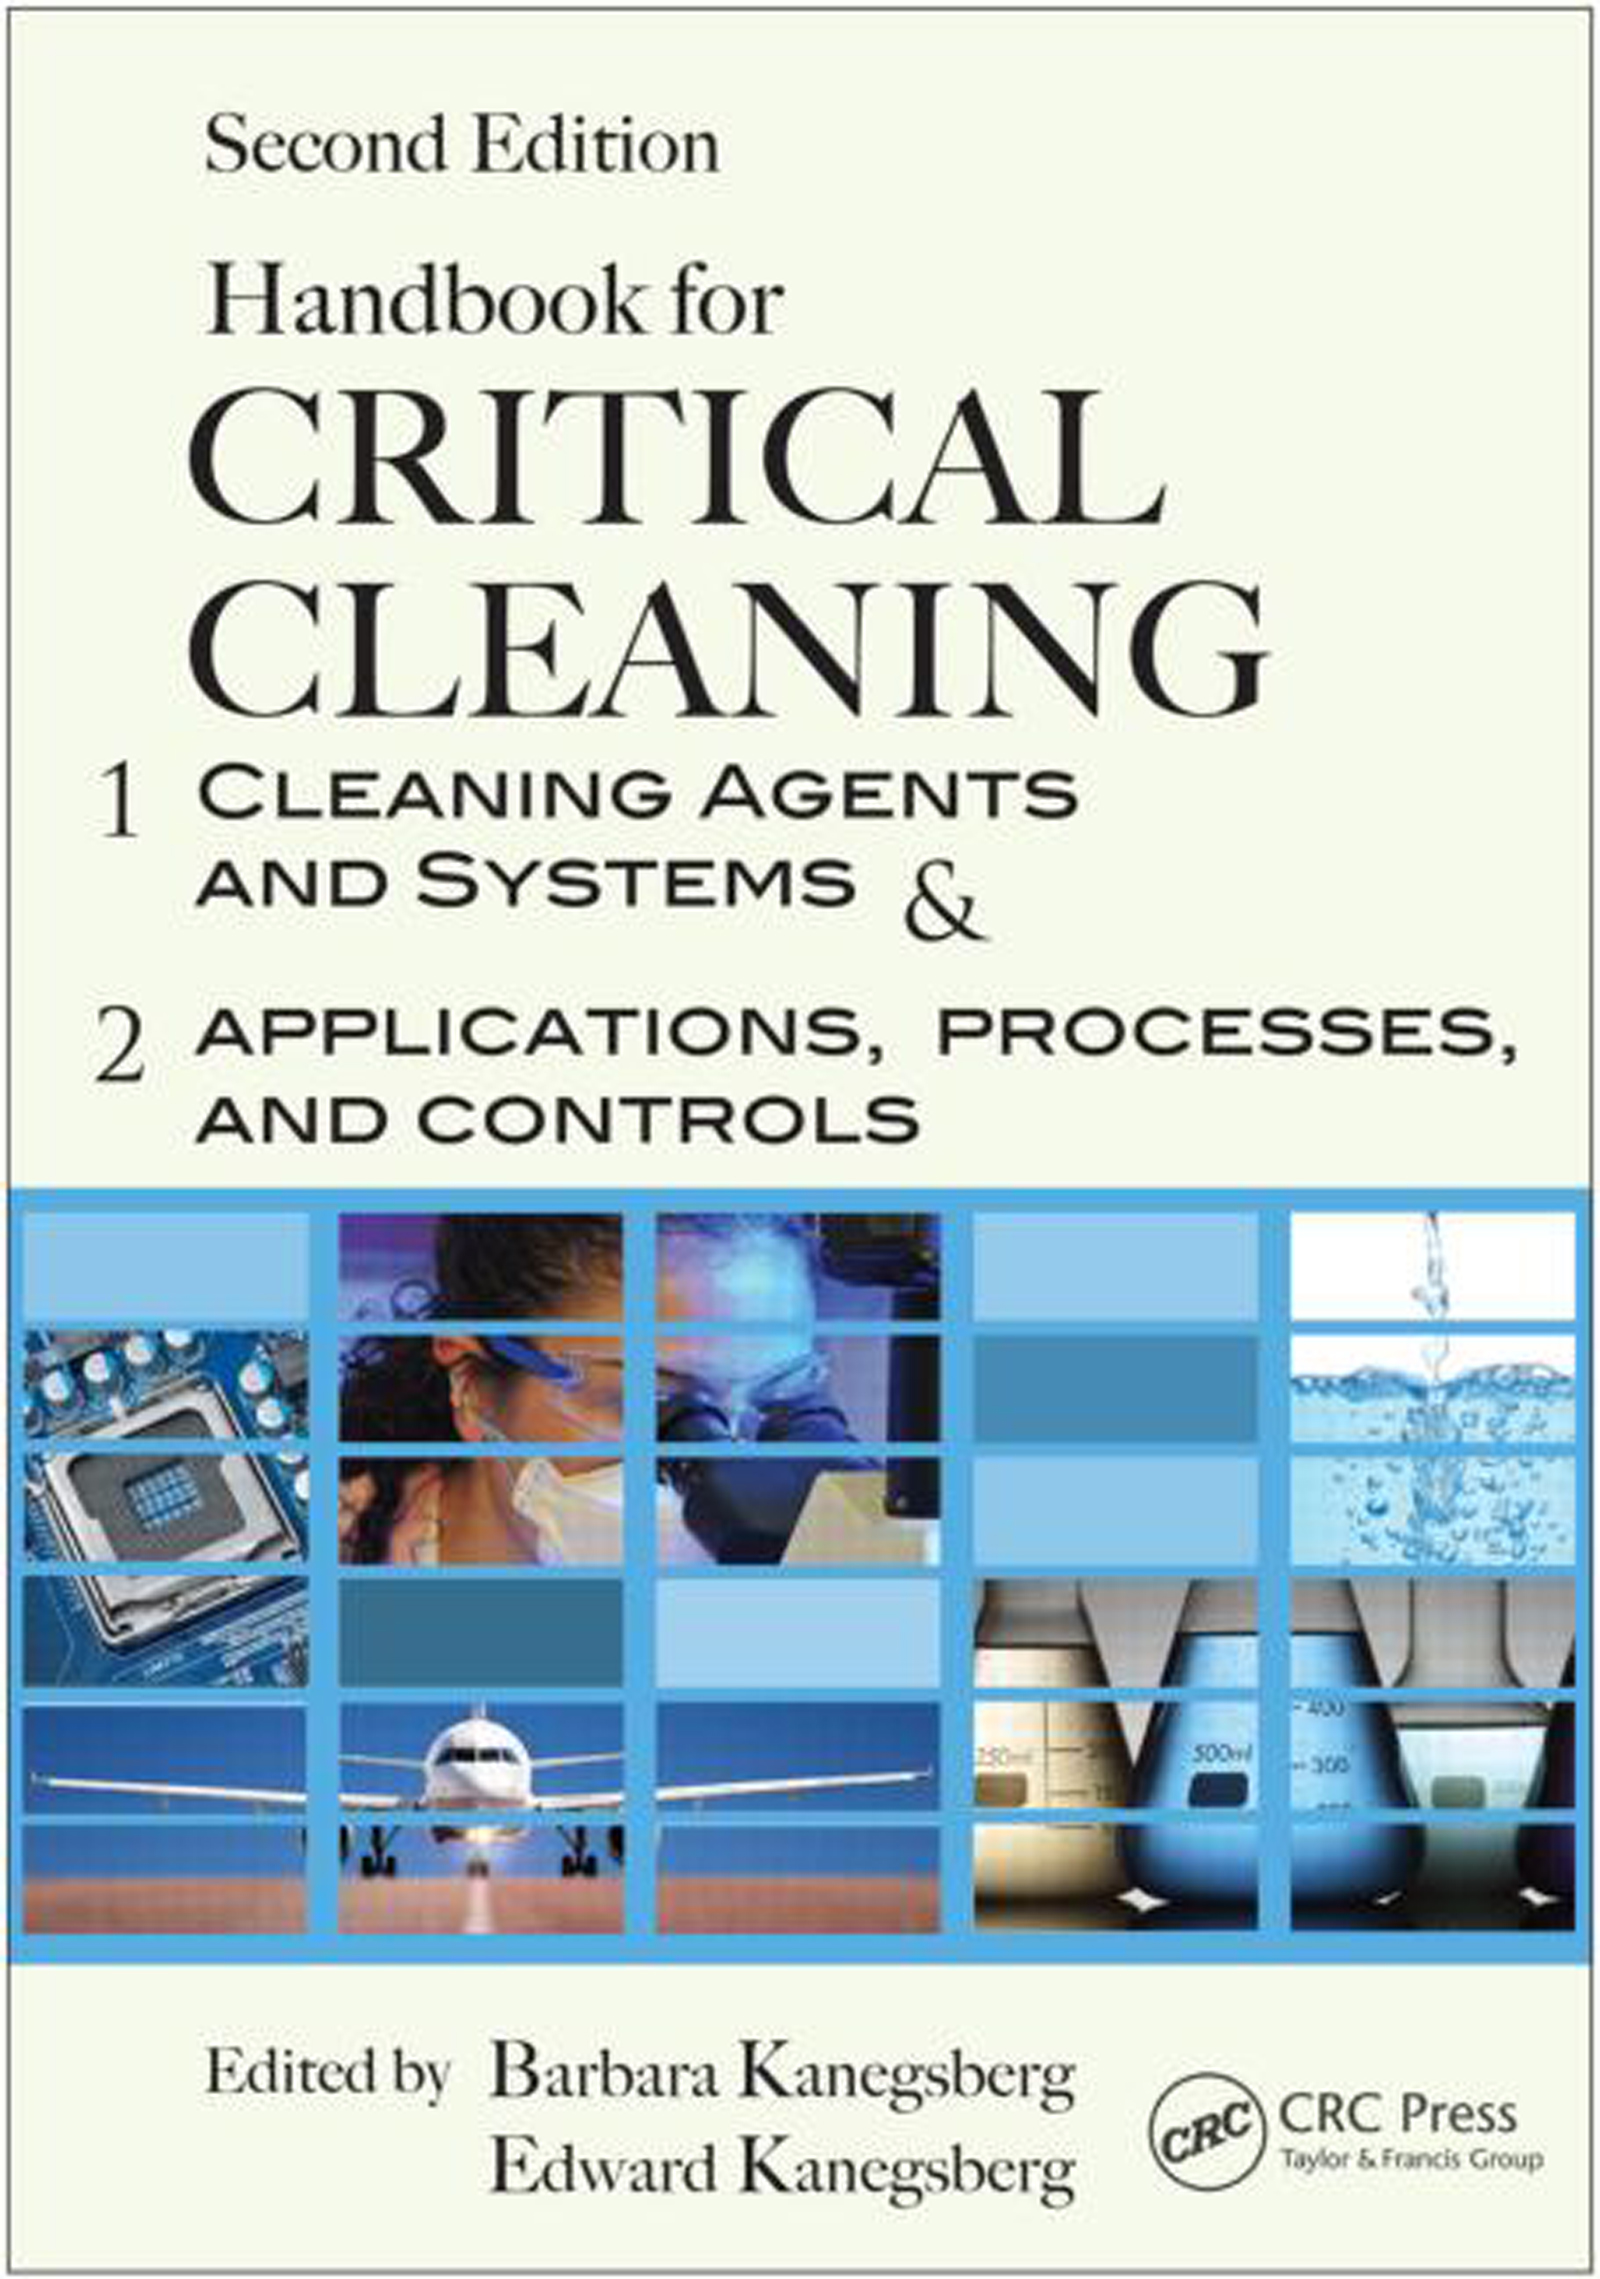 Handbook for Critical Cleaning, Second Edition - 2 Volume Set